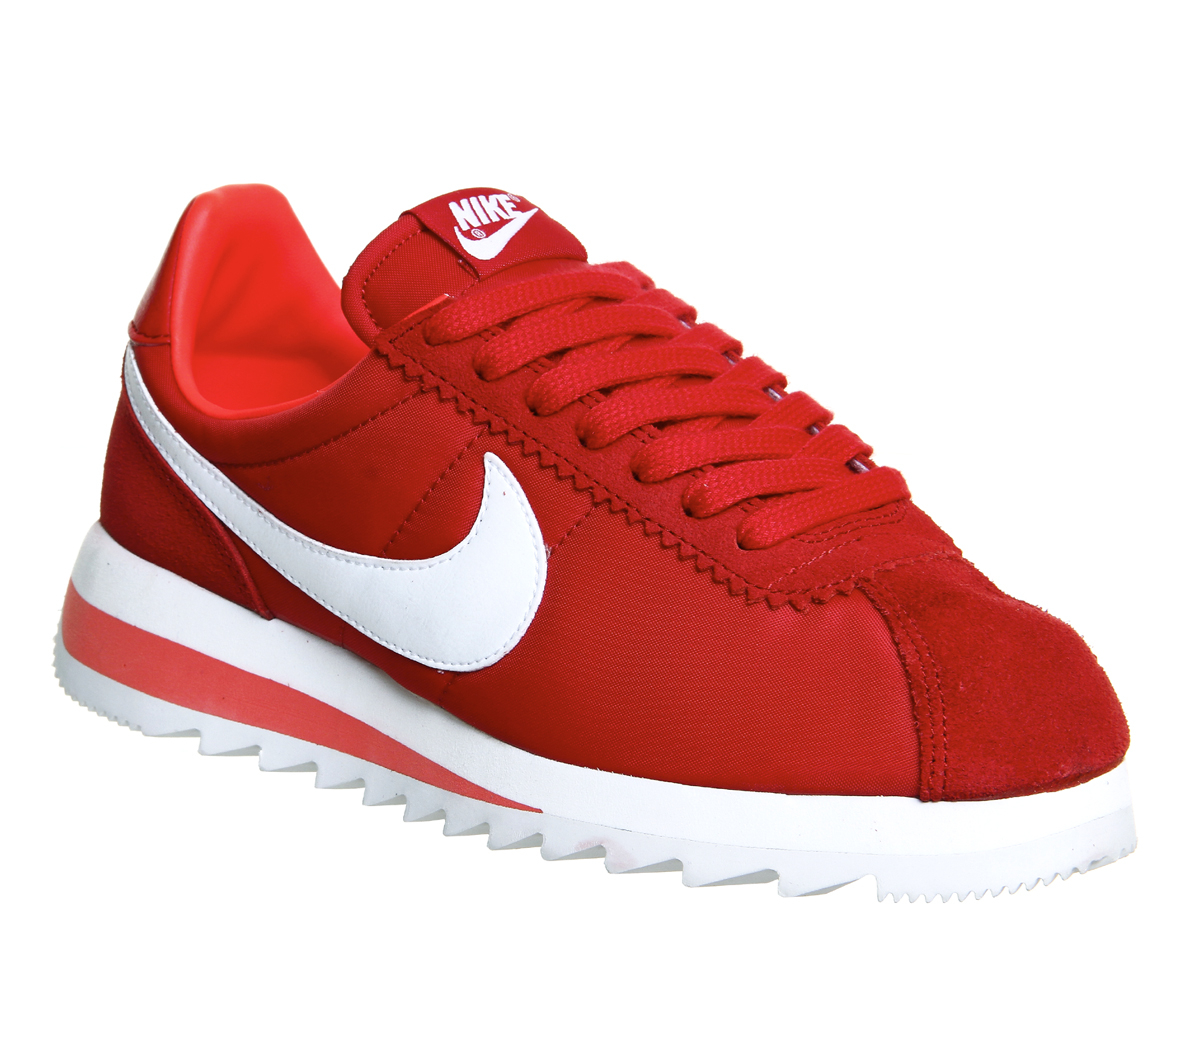 Nike Classic Cortez Canvas Sneakers In Blue For Men Lyst